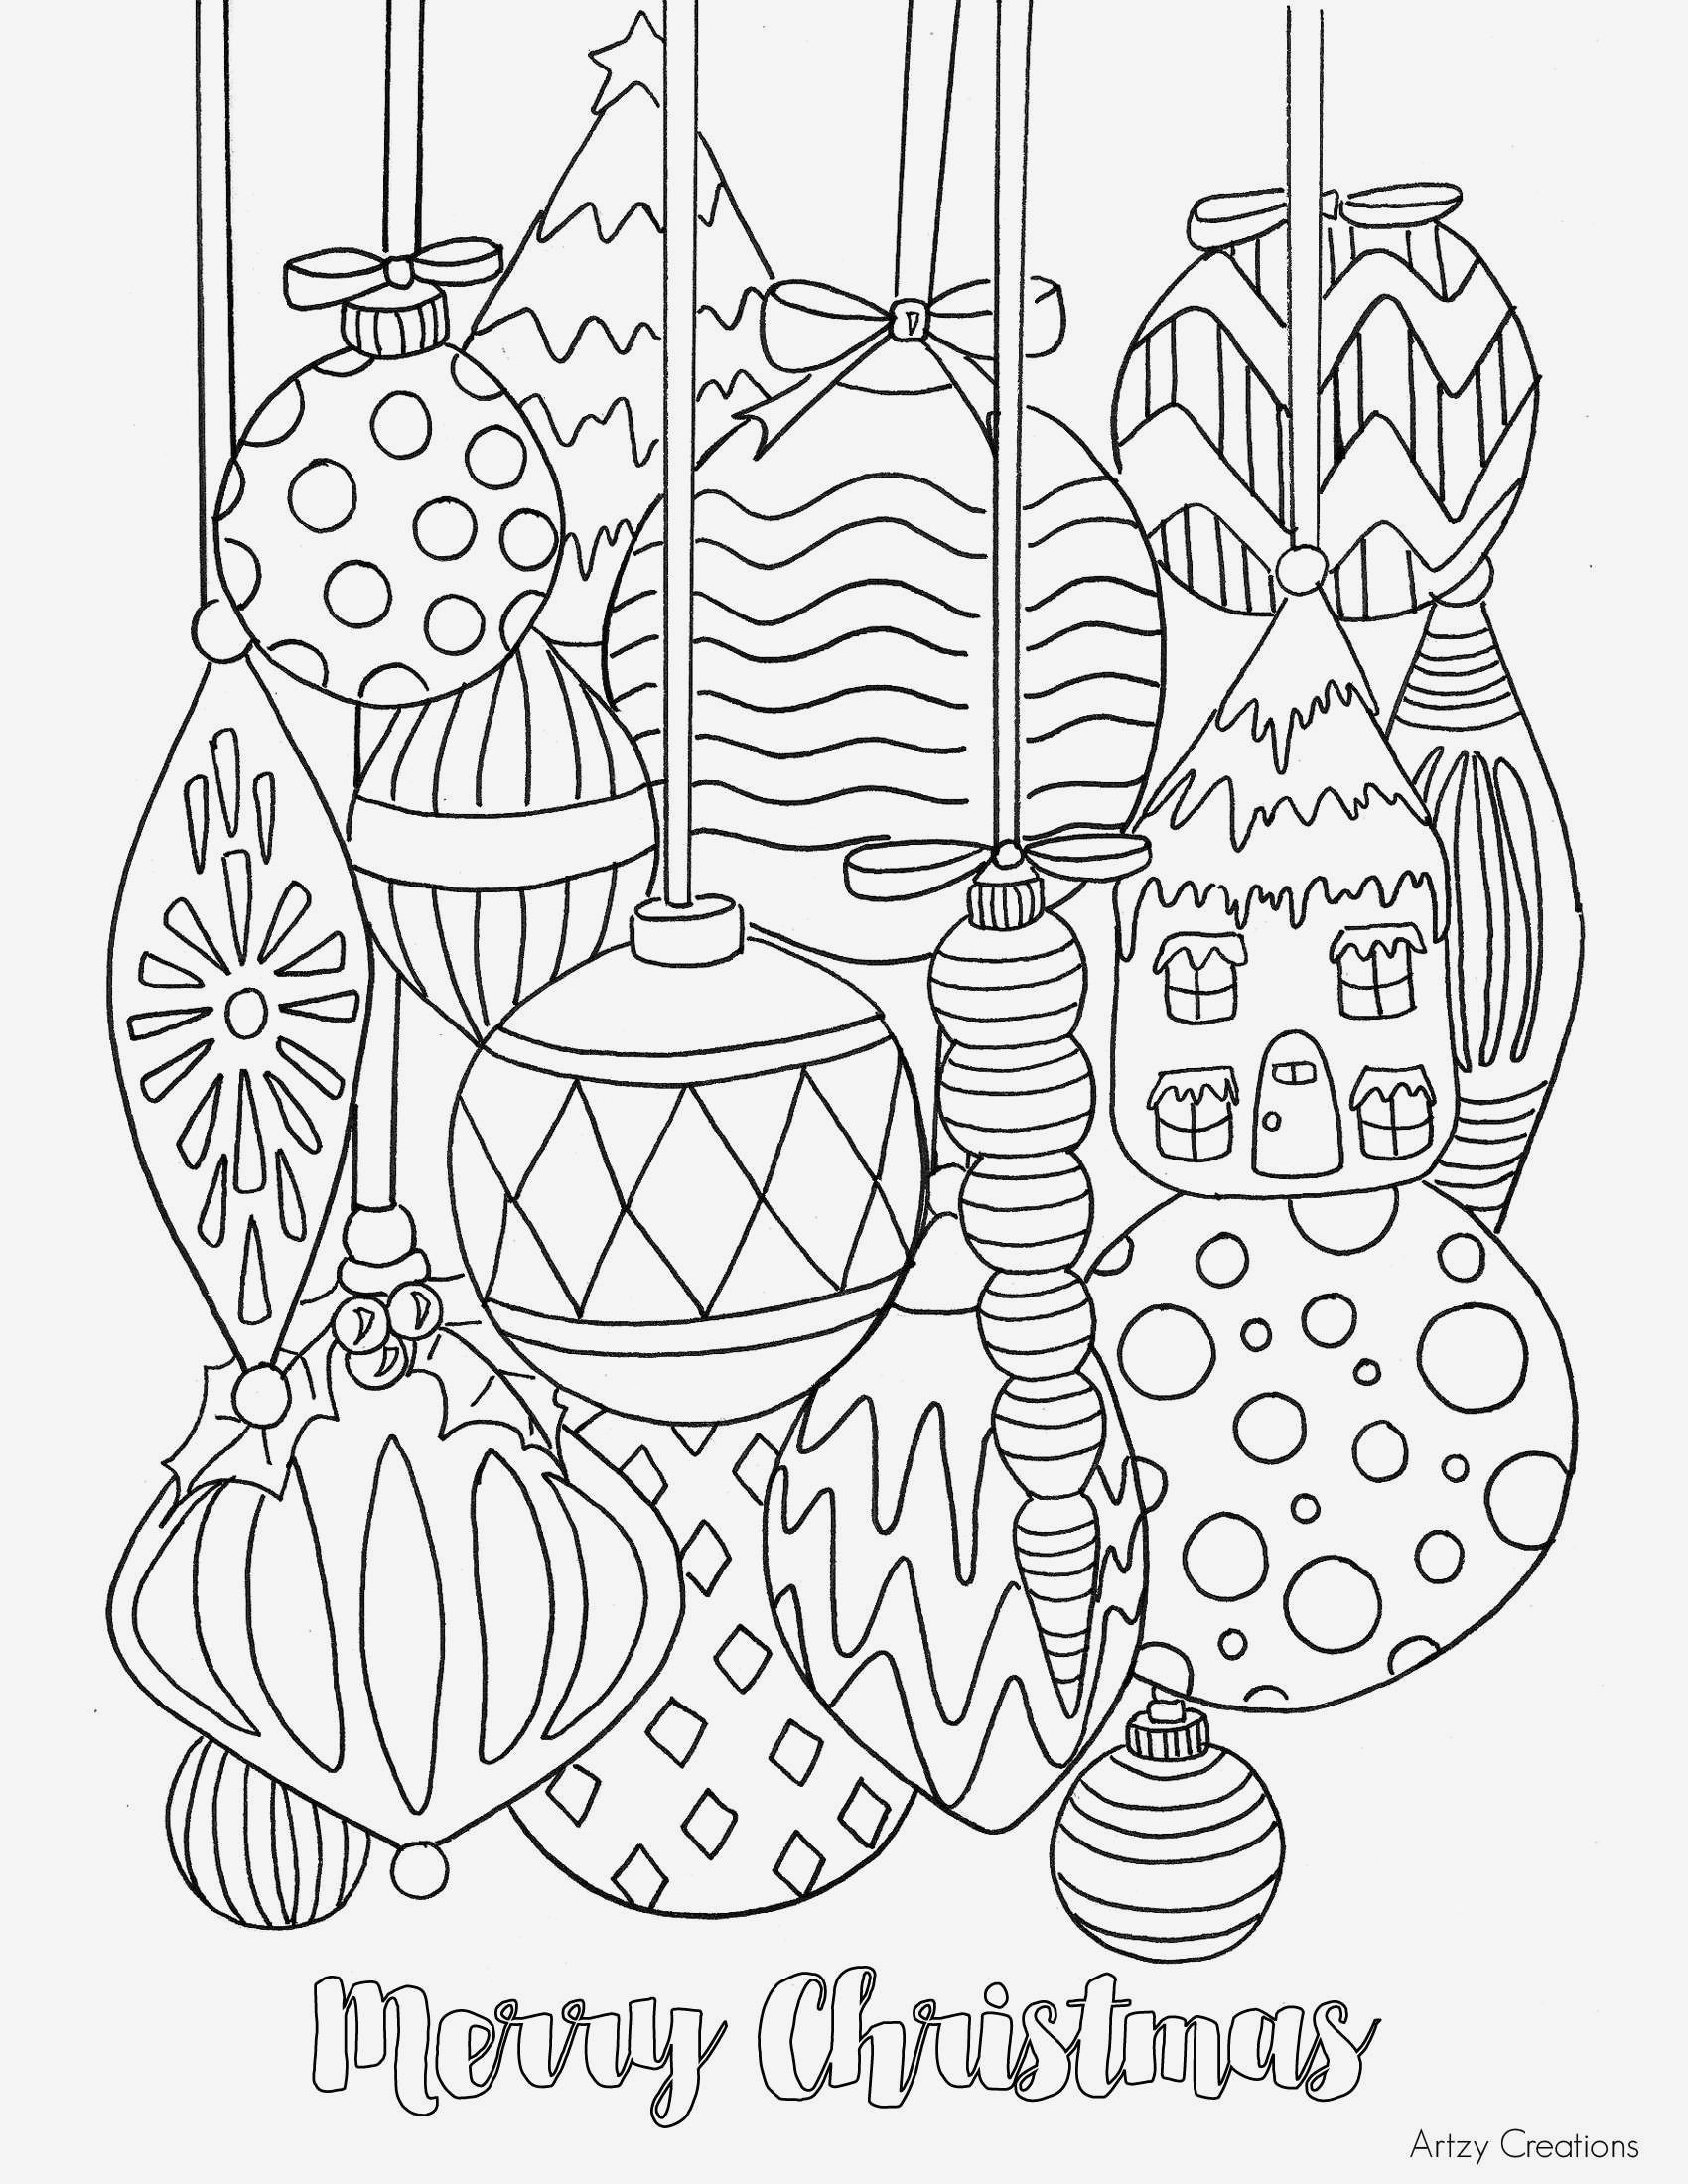 73 best of images of lego batman coloring coloring and art free christmas coloring pages. Black Bedroom Furniture Sets. Home Design Ideas